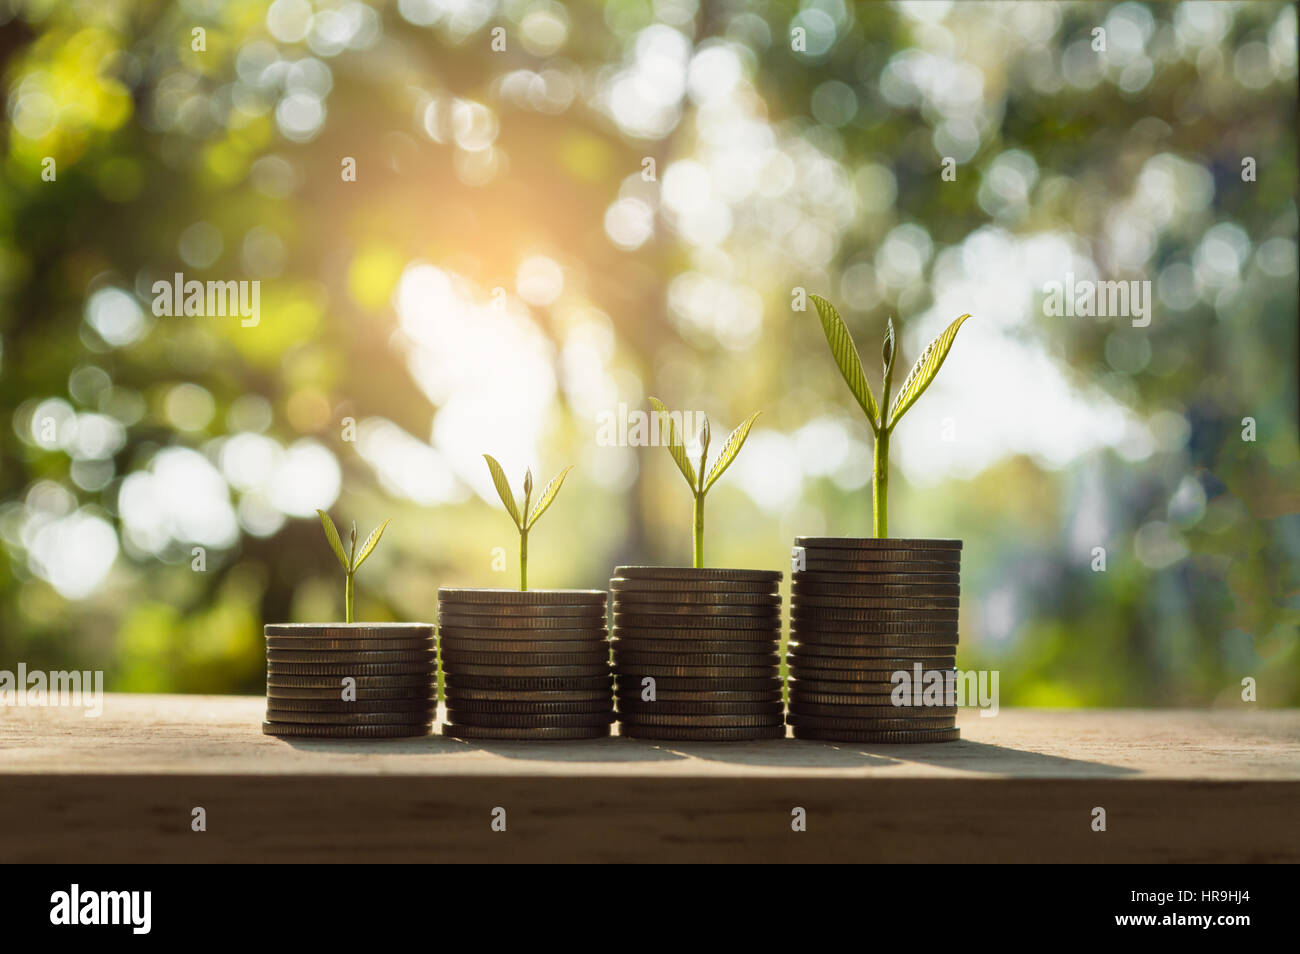 silver coin stack and tree in concept of growth business background. - Stock Image